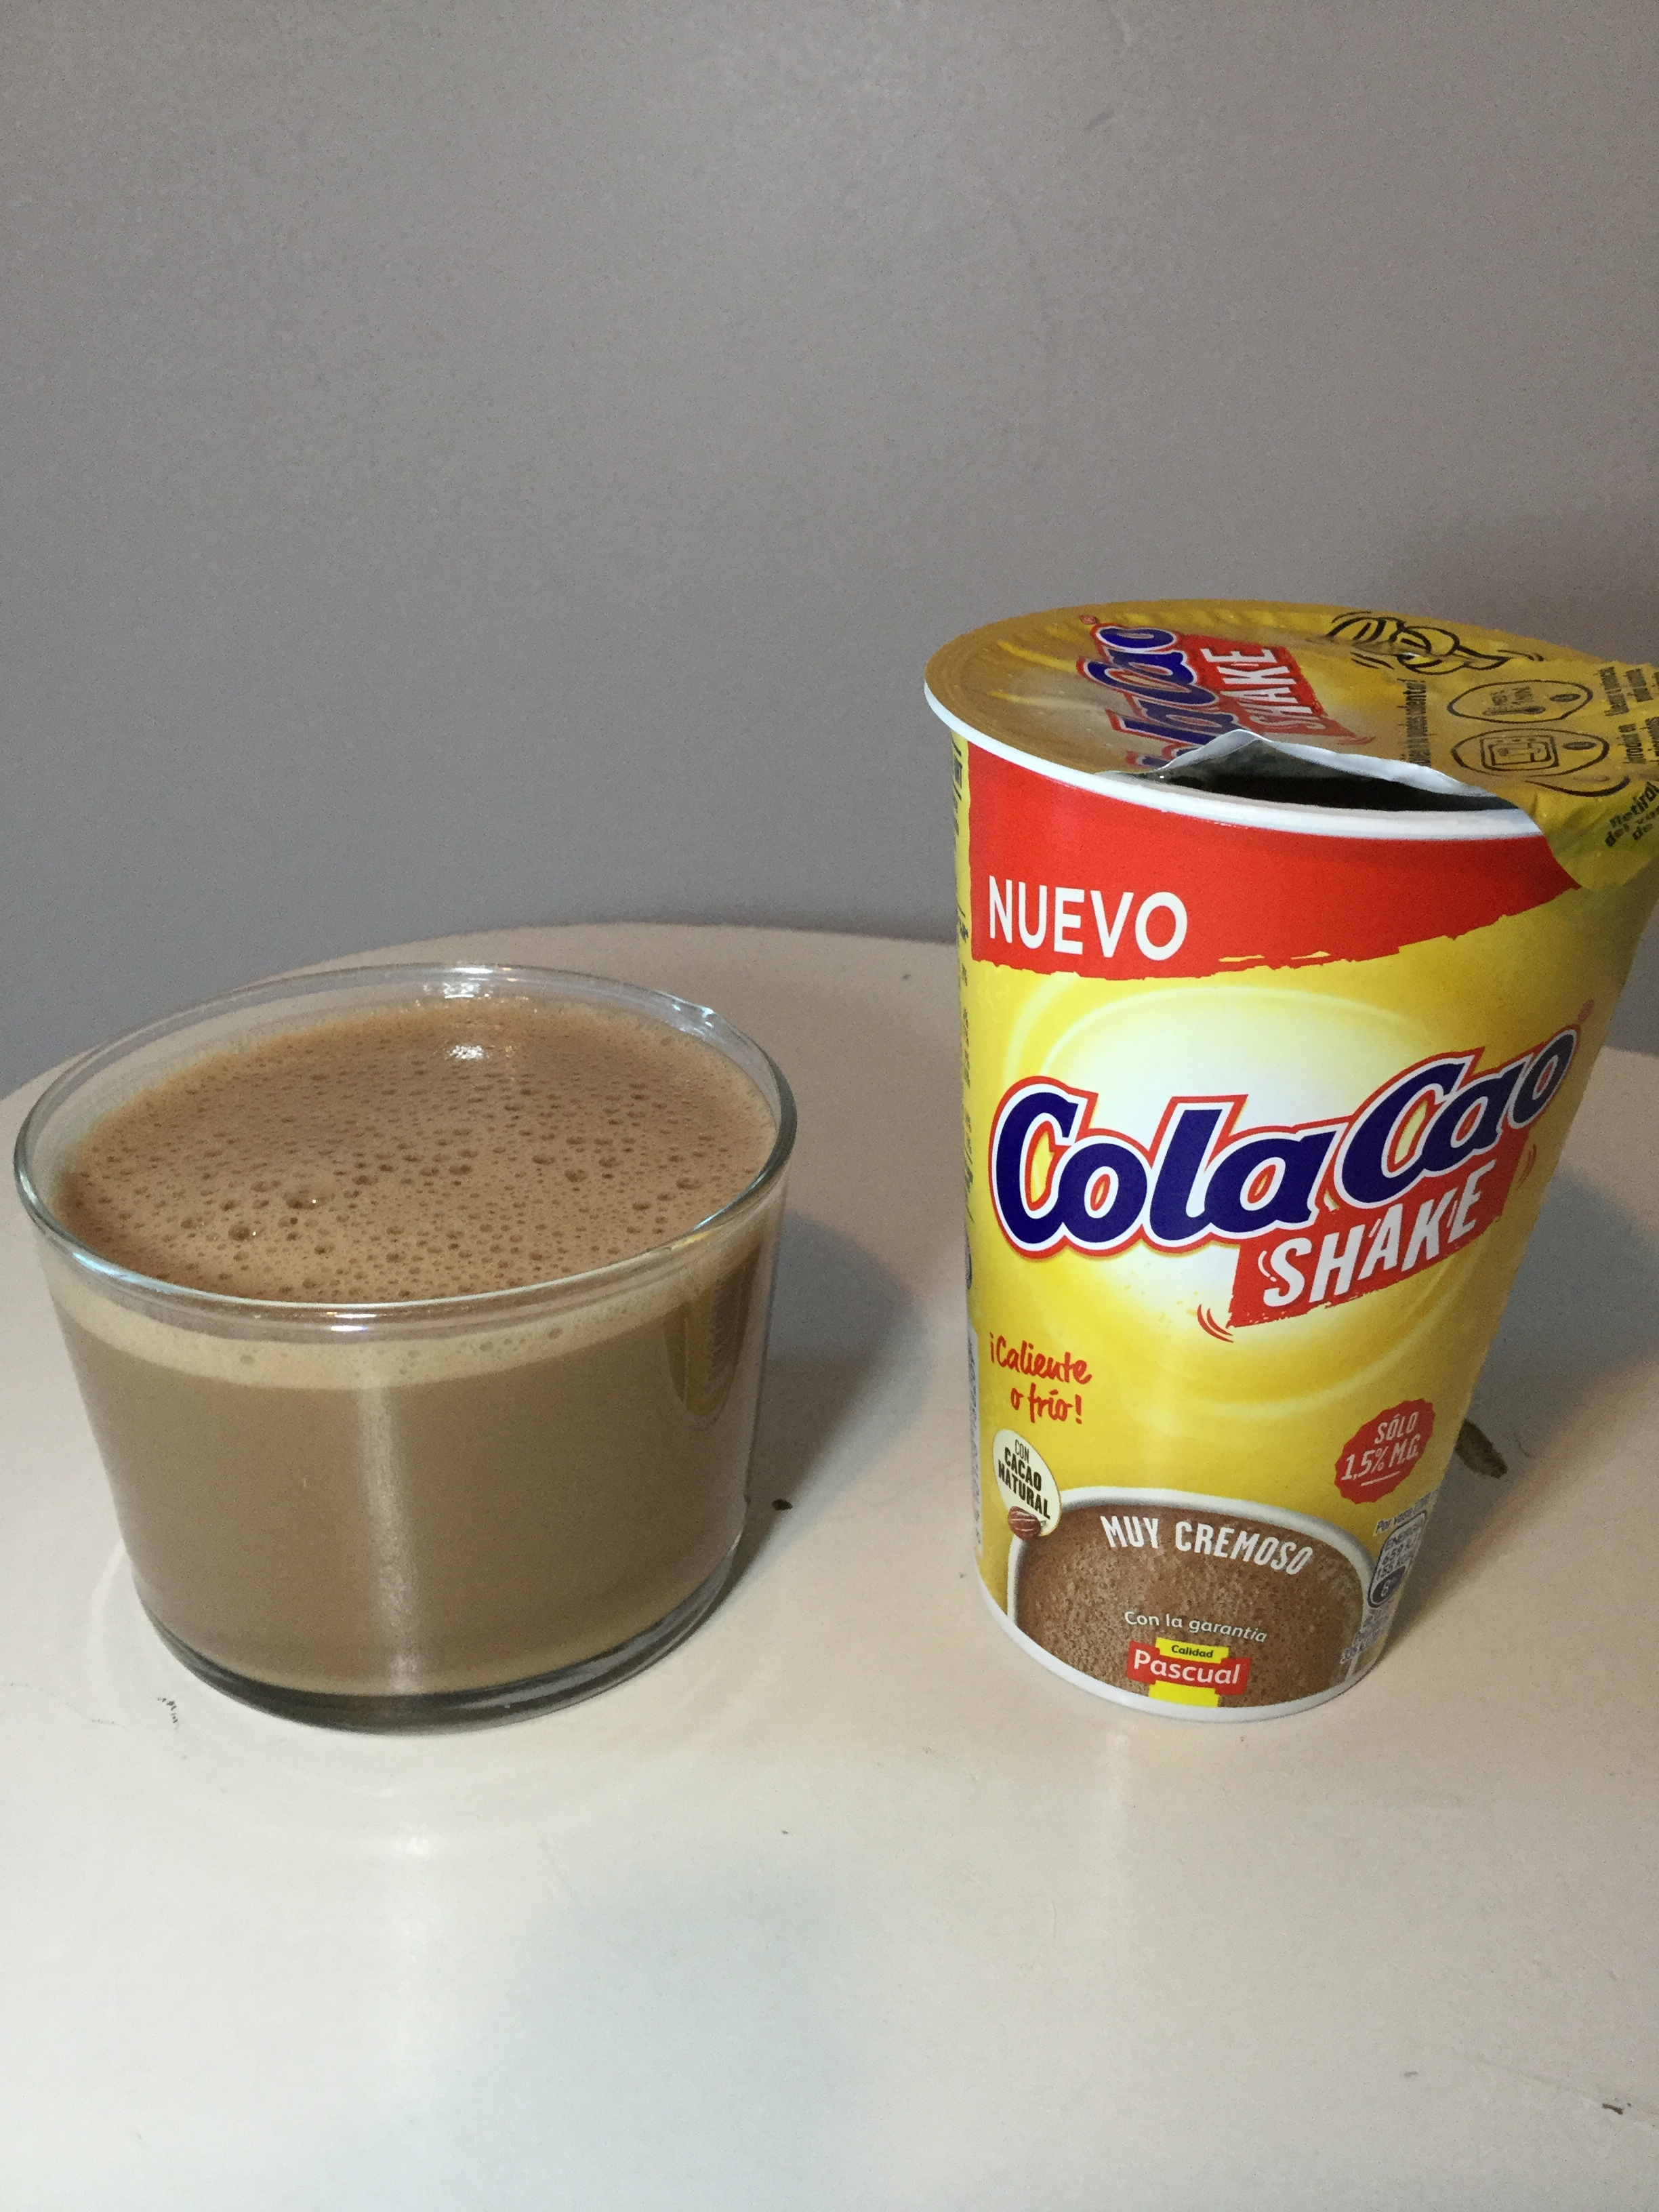 ColaCao Shake Cup